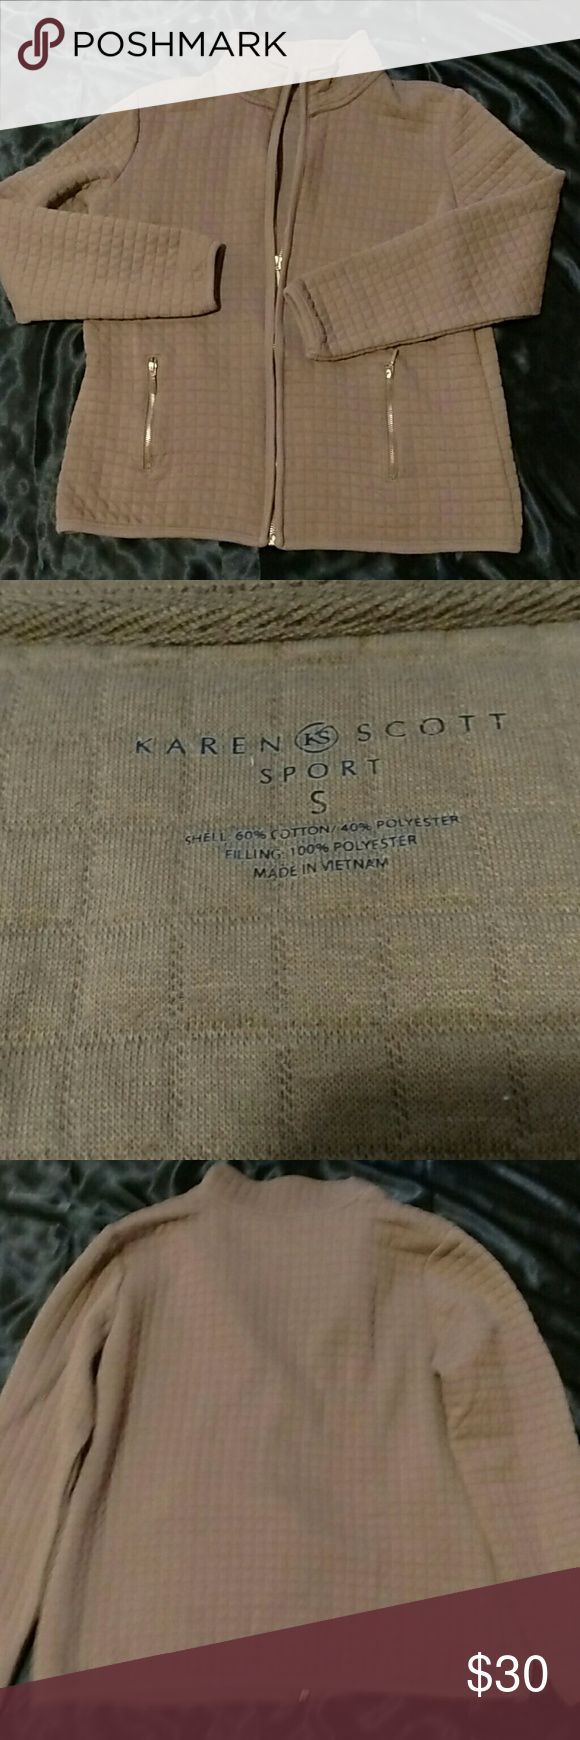 KAREN SCOTT SPORT JACKET Karen Scott sport jacket. Size small. In great condition.Color is tan. Sorry, my lighting is bad on my phone. Karen Scott Jackets & Coats